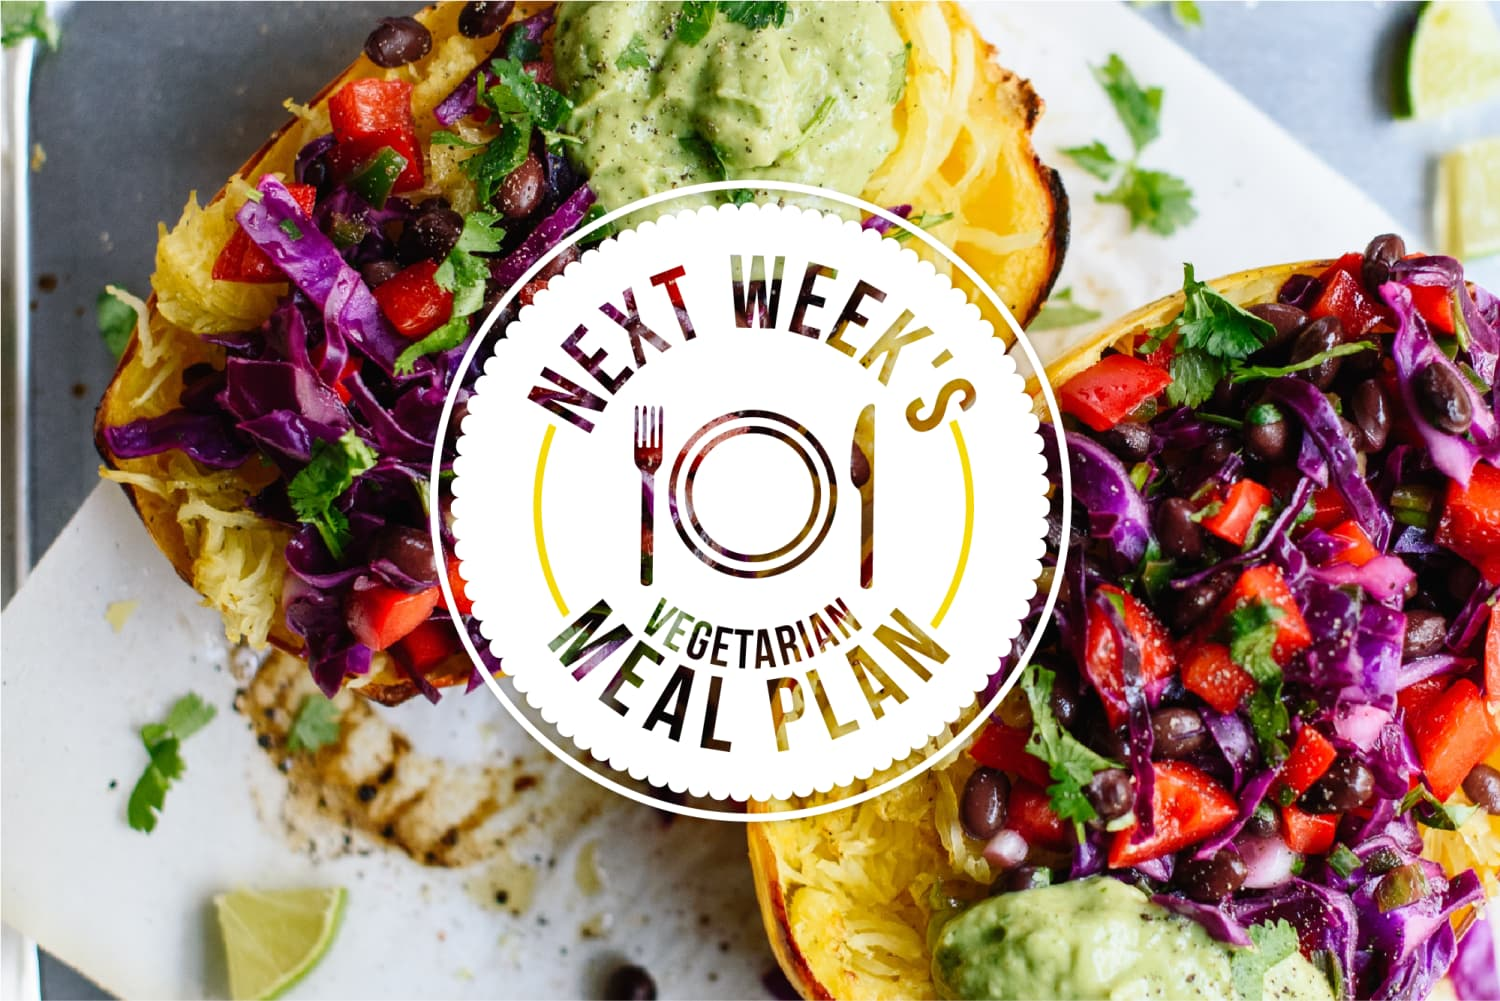 Next Week's Vegetarian Meal Plan: 5 Vegetarian Dinners I Eat When I Have My Act Together